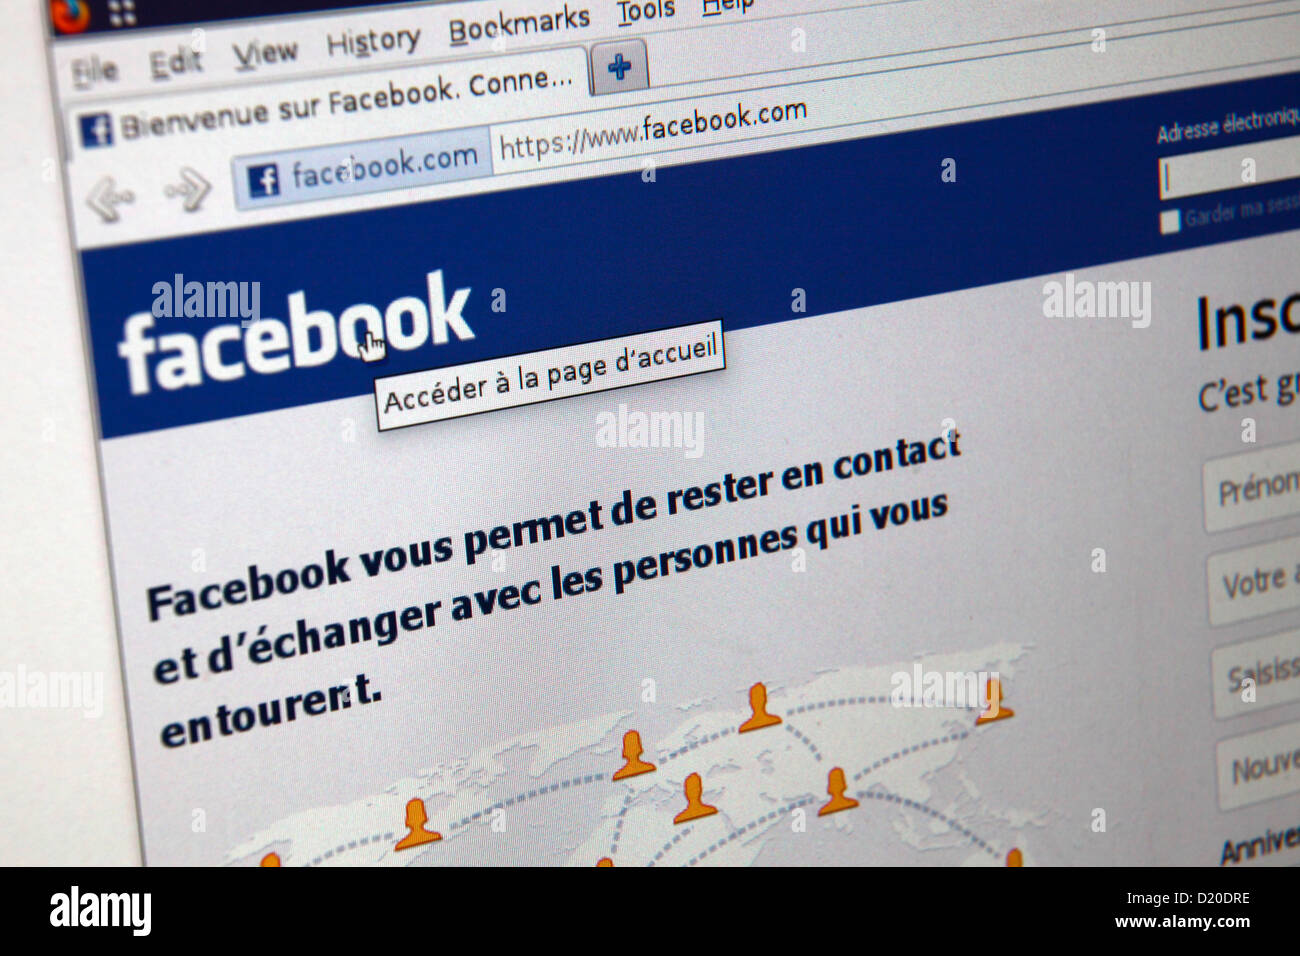 Facebook- French Language site - Stock Image